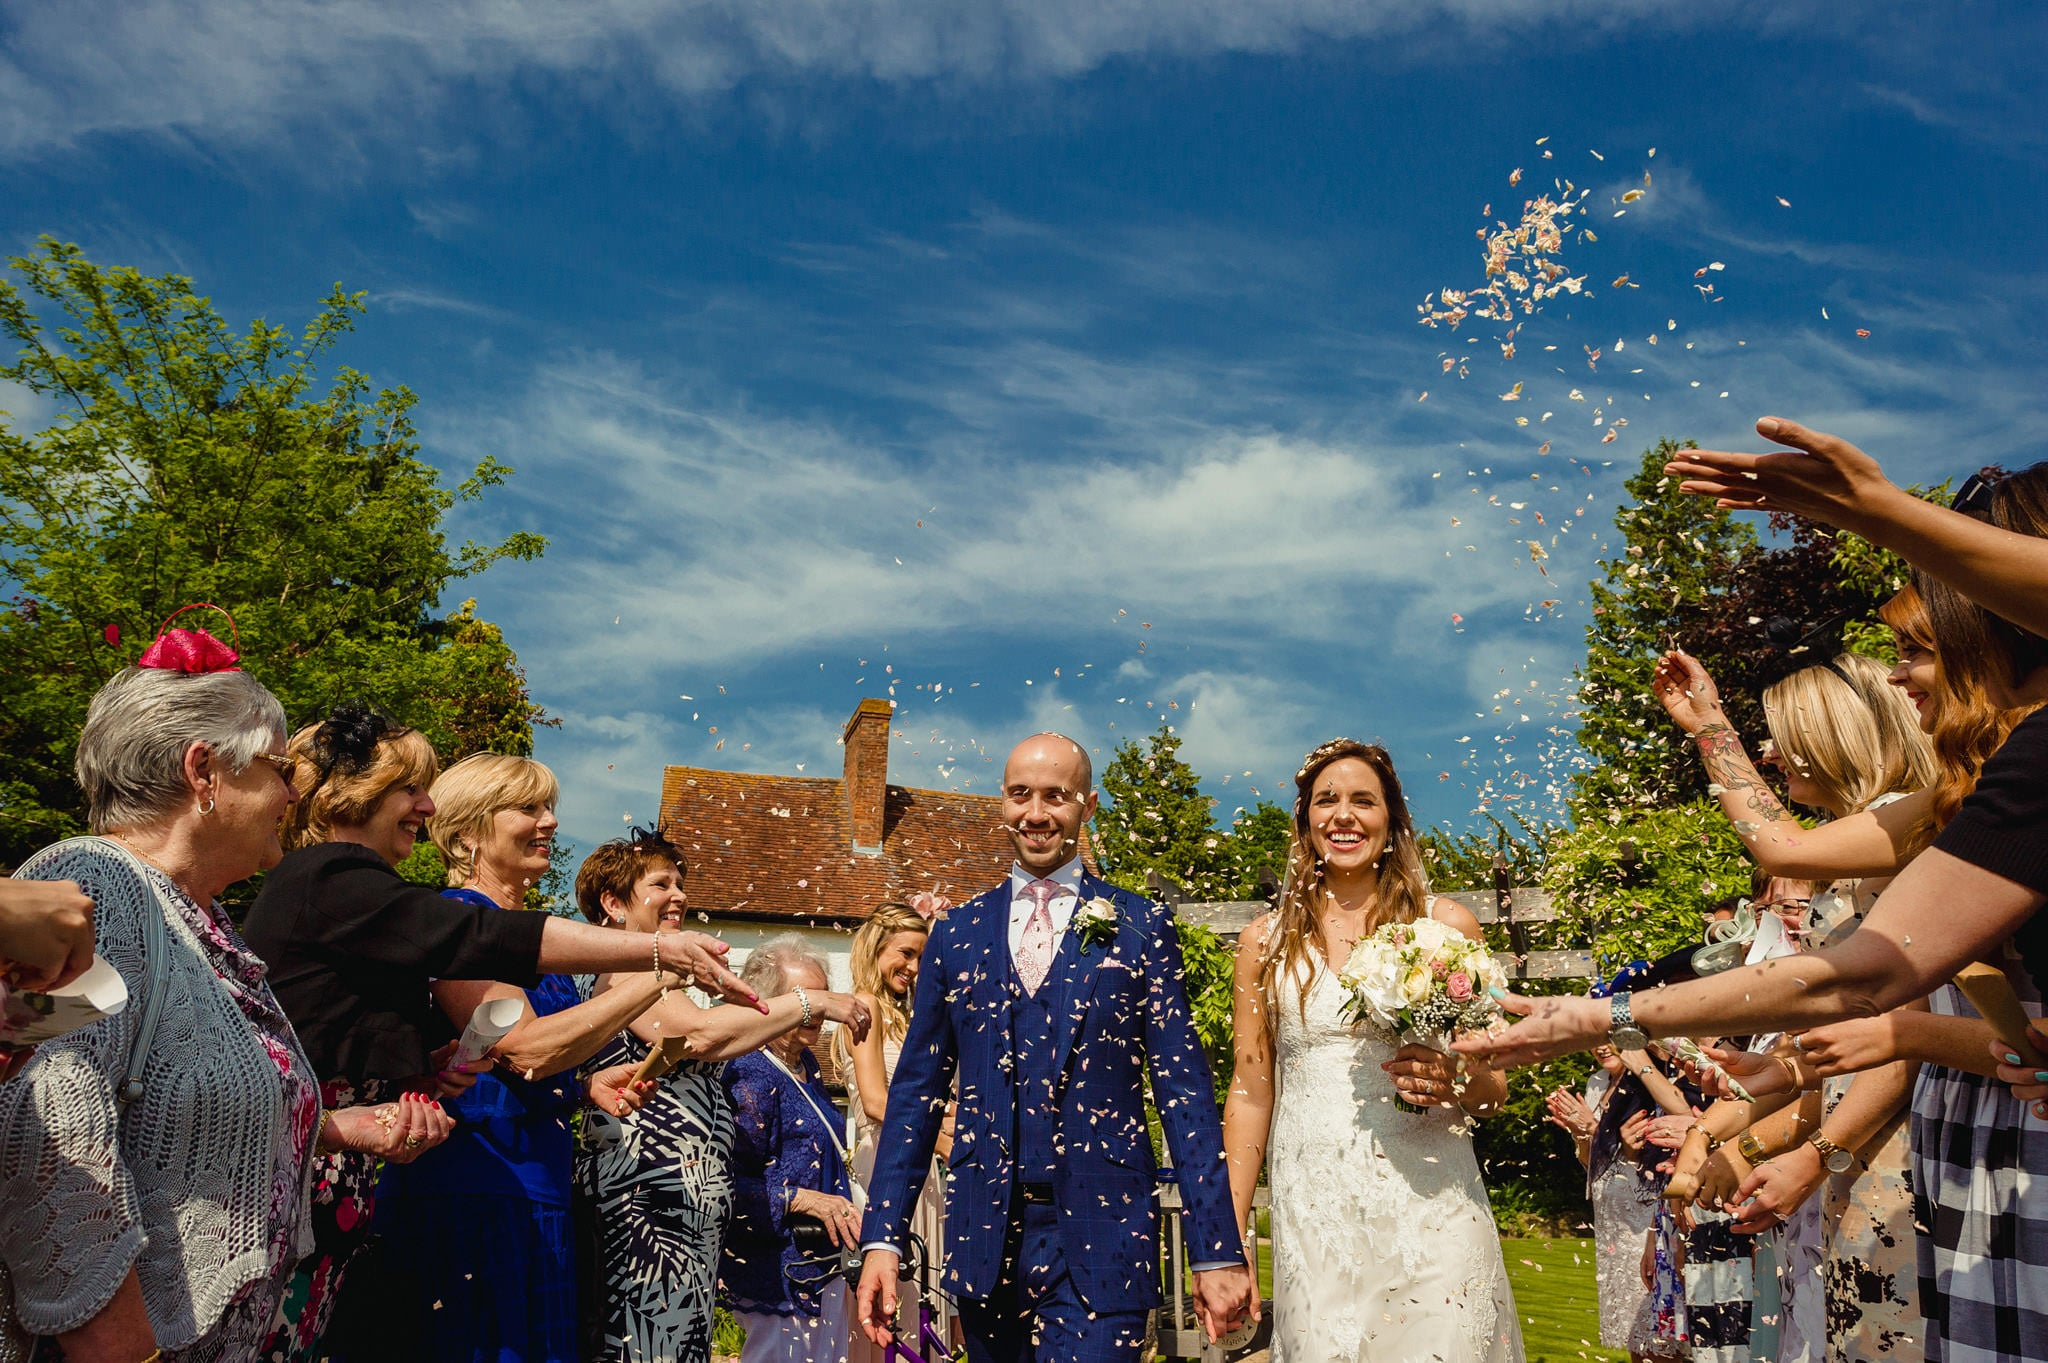 Wedding at Redhouse Barn in Stoke Prior, Worcestershire 73